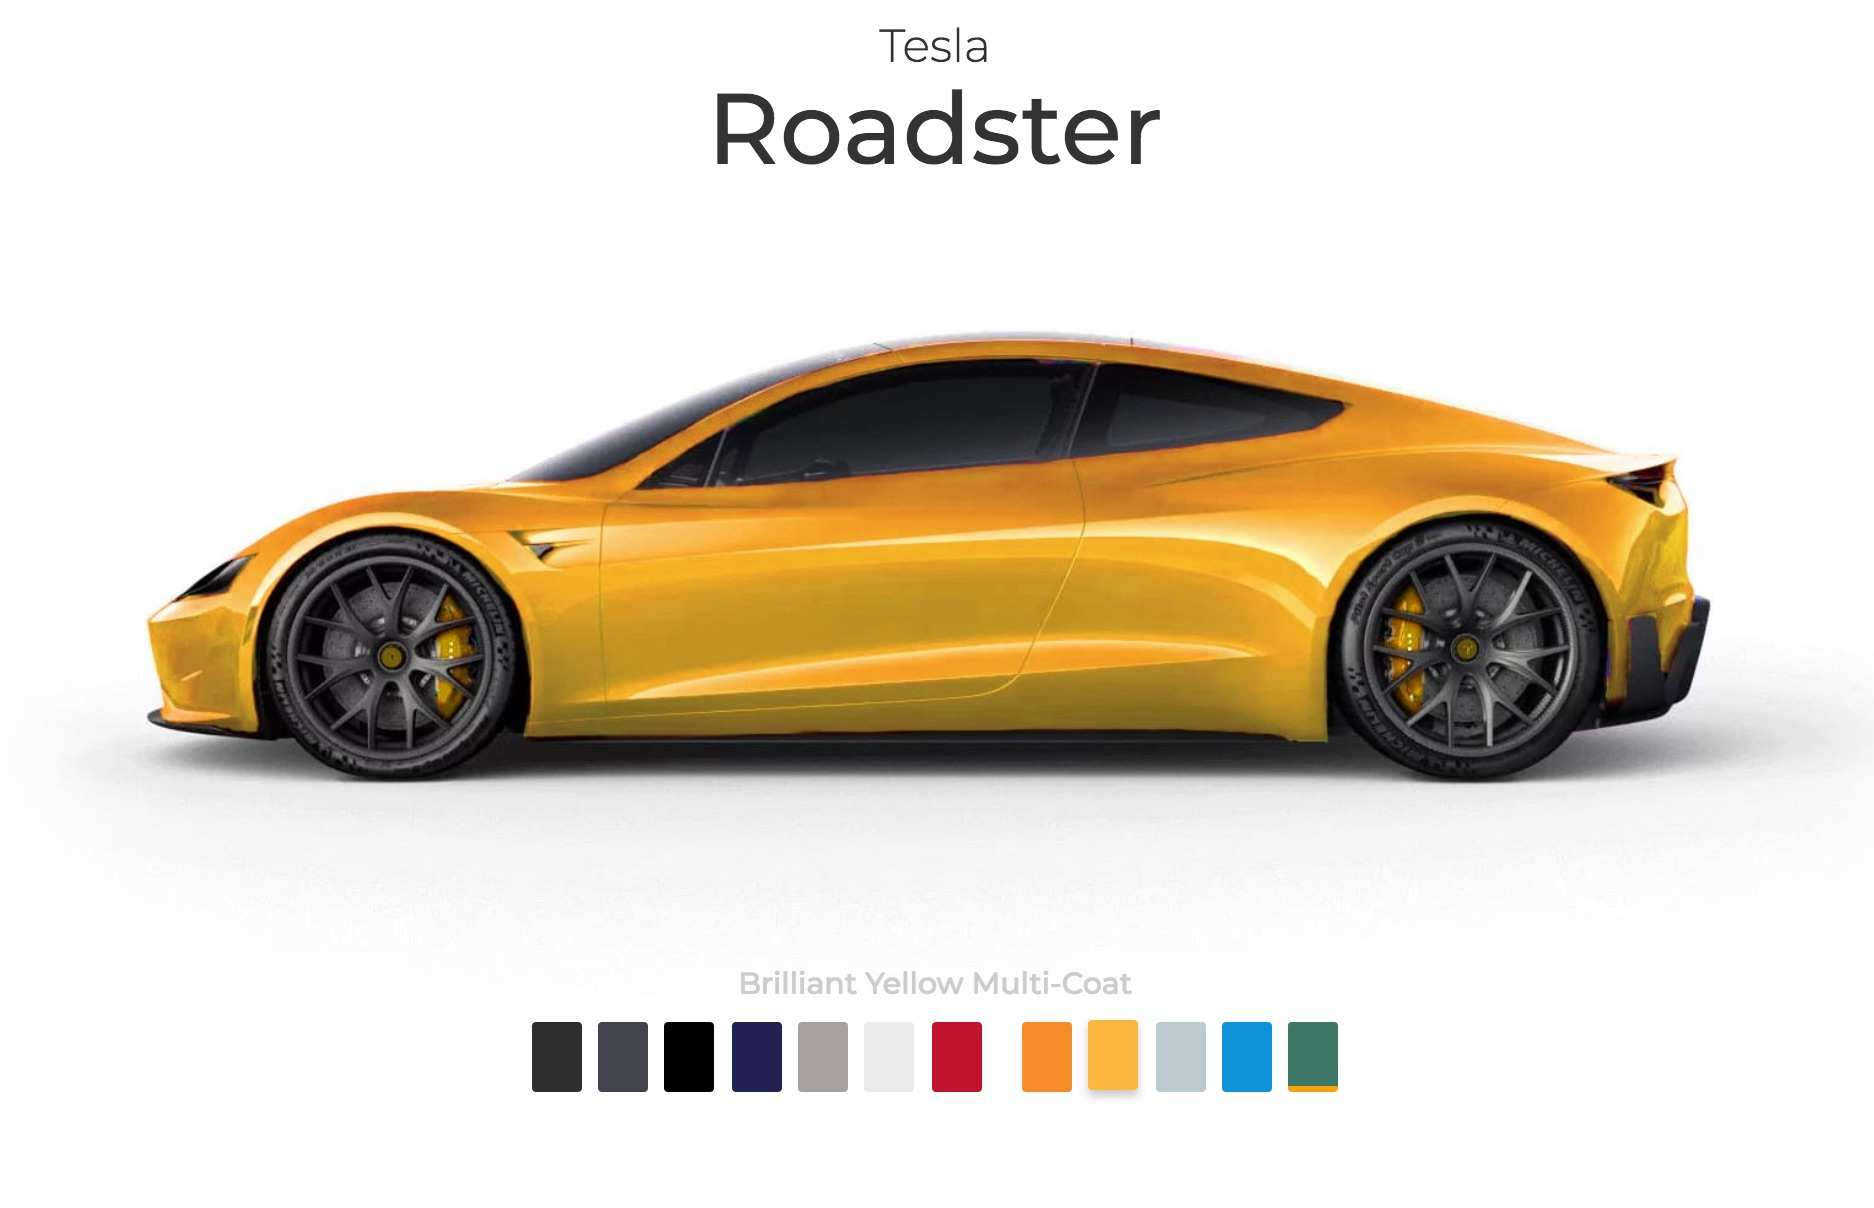 62 Gallery of 2020 Tesla Roadster Charge Time Pricing with 2020 Tesla Roadster Charge Time